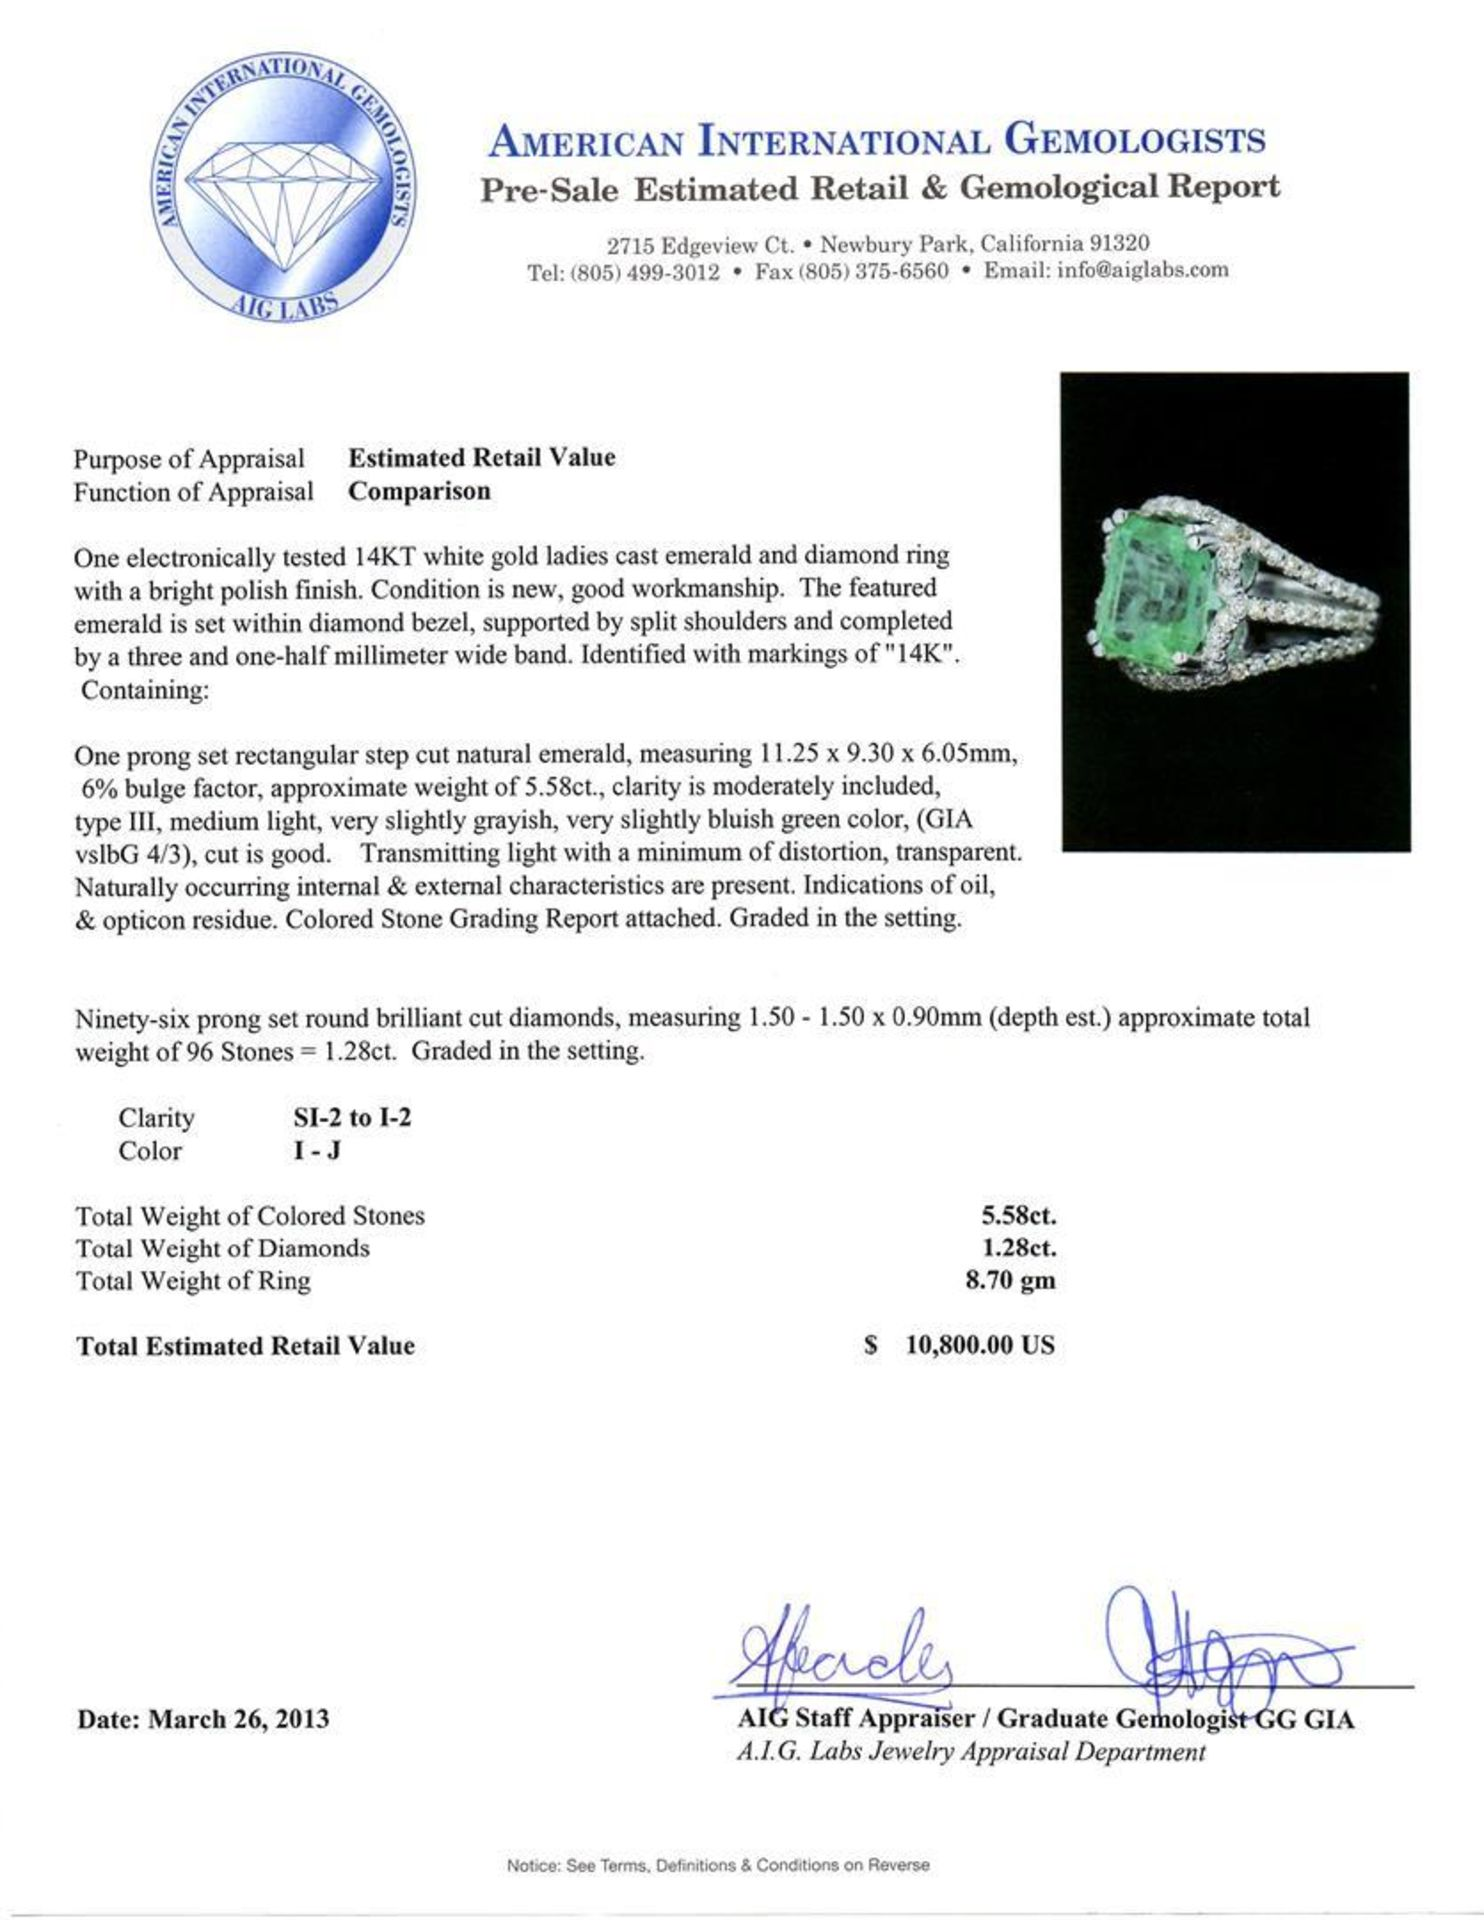 14KT White Gold 5.58ct Emerald and Diamond Ring - Image 4 of 4